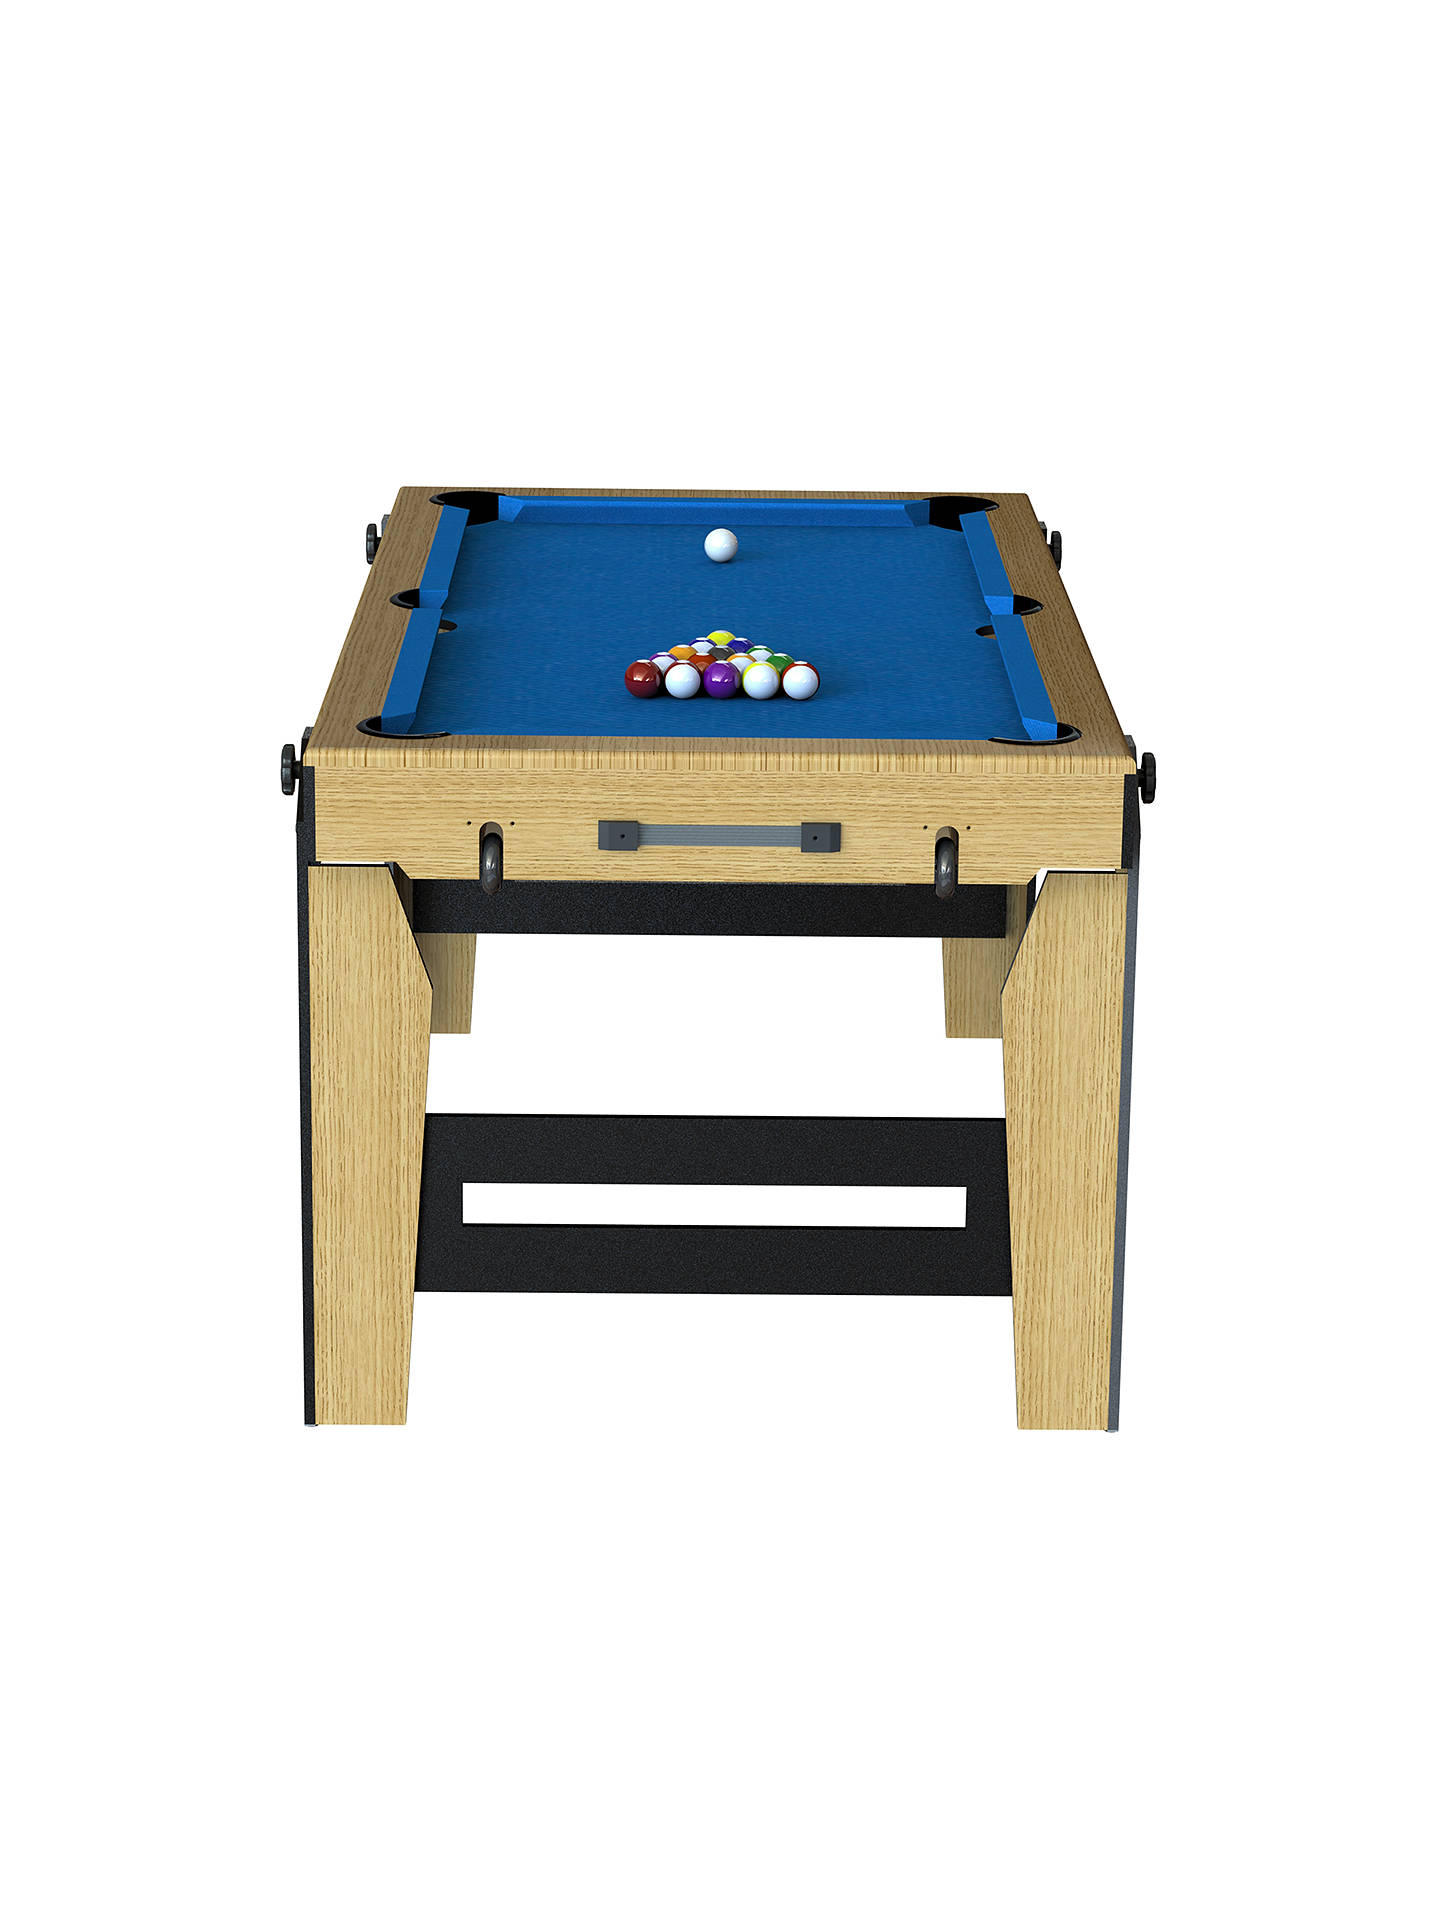 Buy BCE Razor Rolling Lay Flat 5ft Pool Table, Blue Online at johnlewis.com